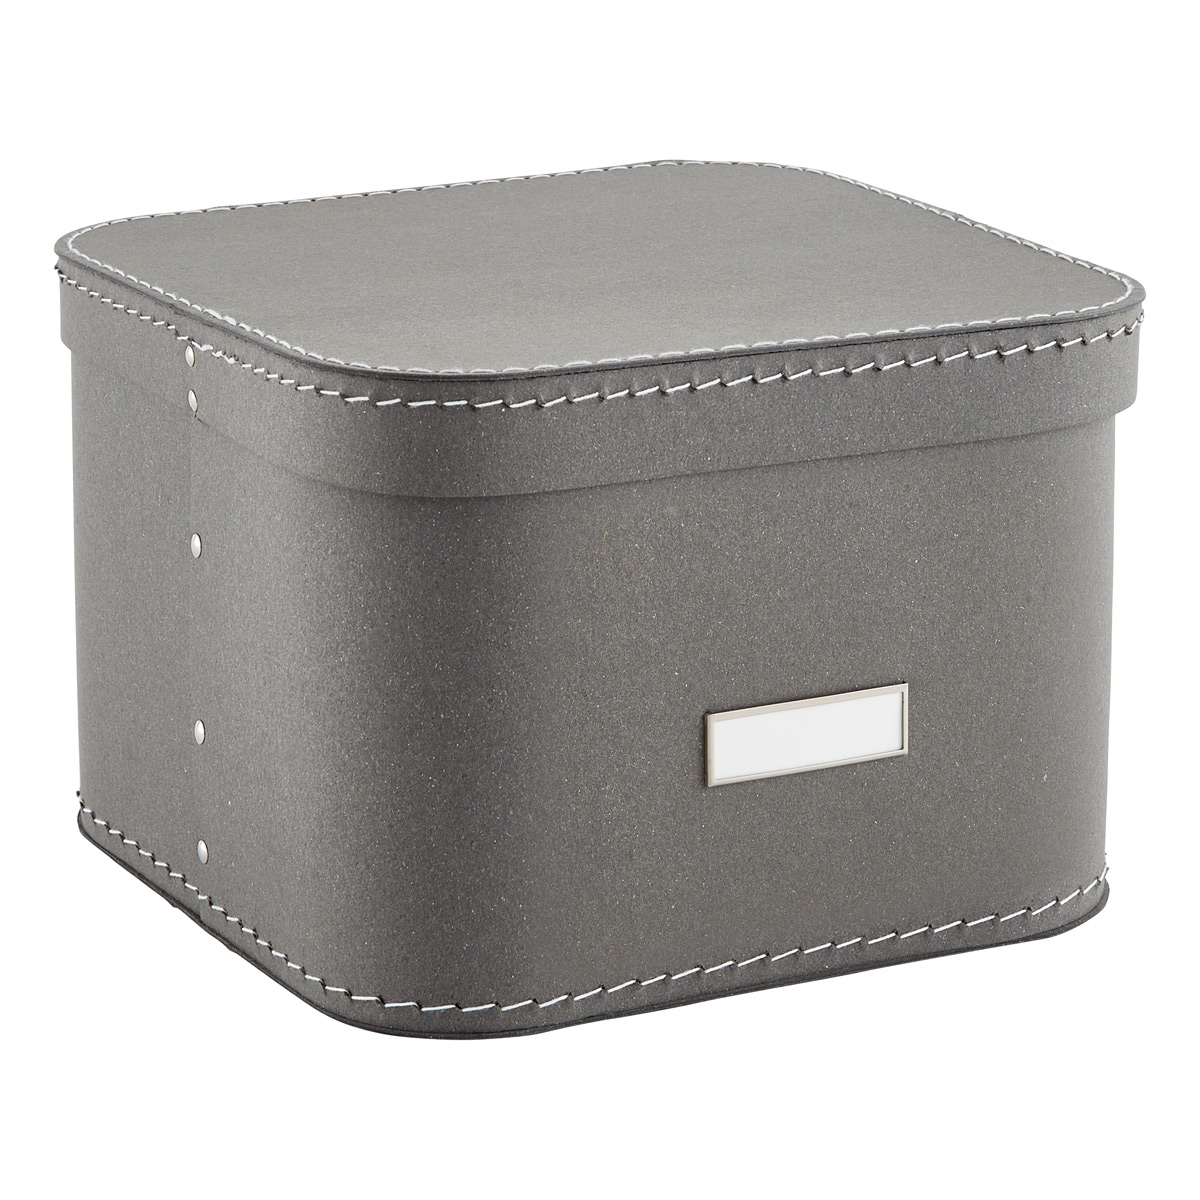 Grey Oskar Storage Box with Lid  sc 1 st  The Container Store & Storage Boxes Fabric Bins u0026 Decorative Clothes Boxes | The ...